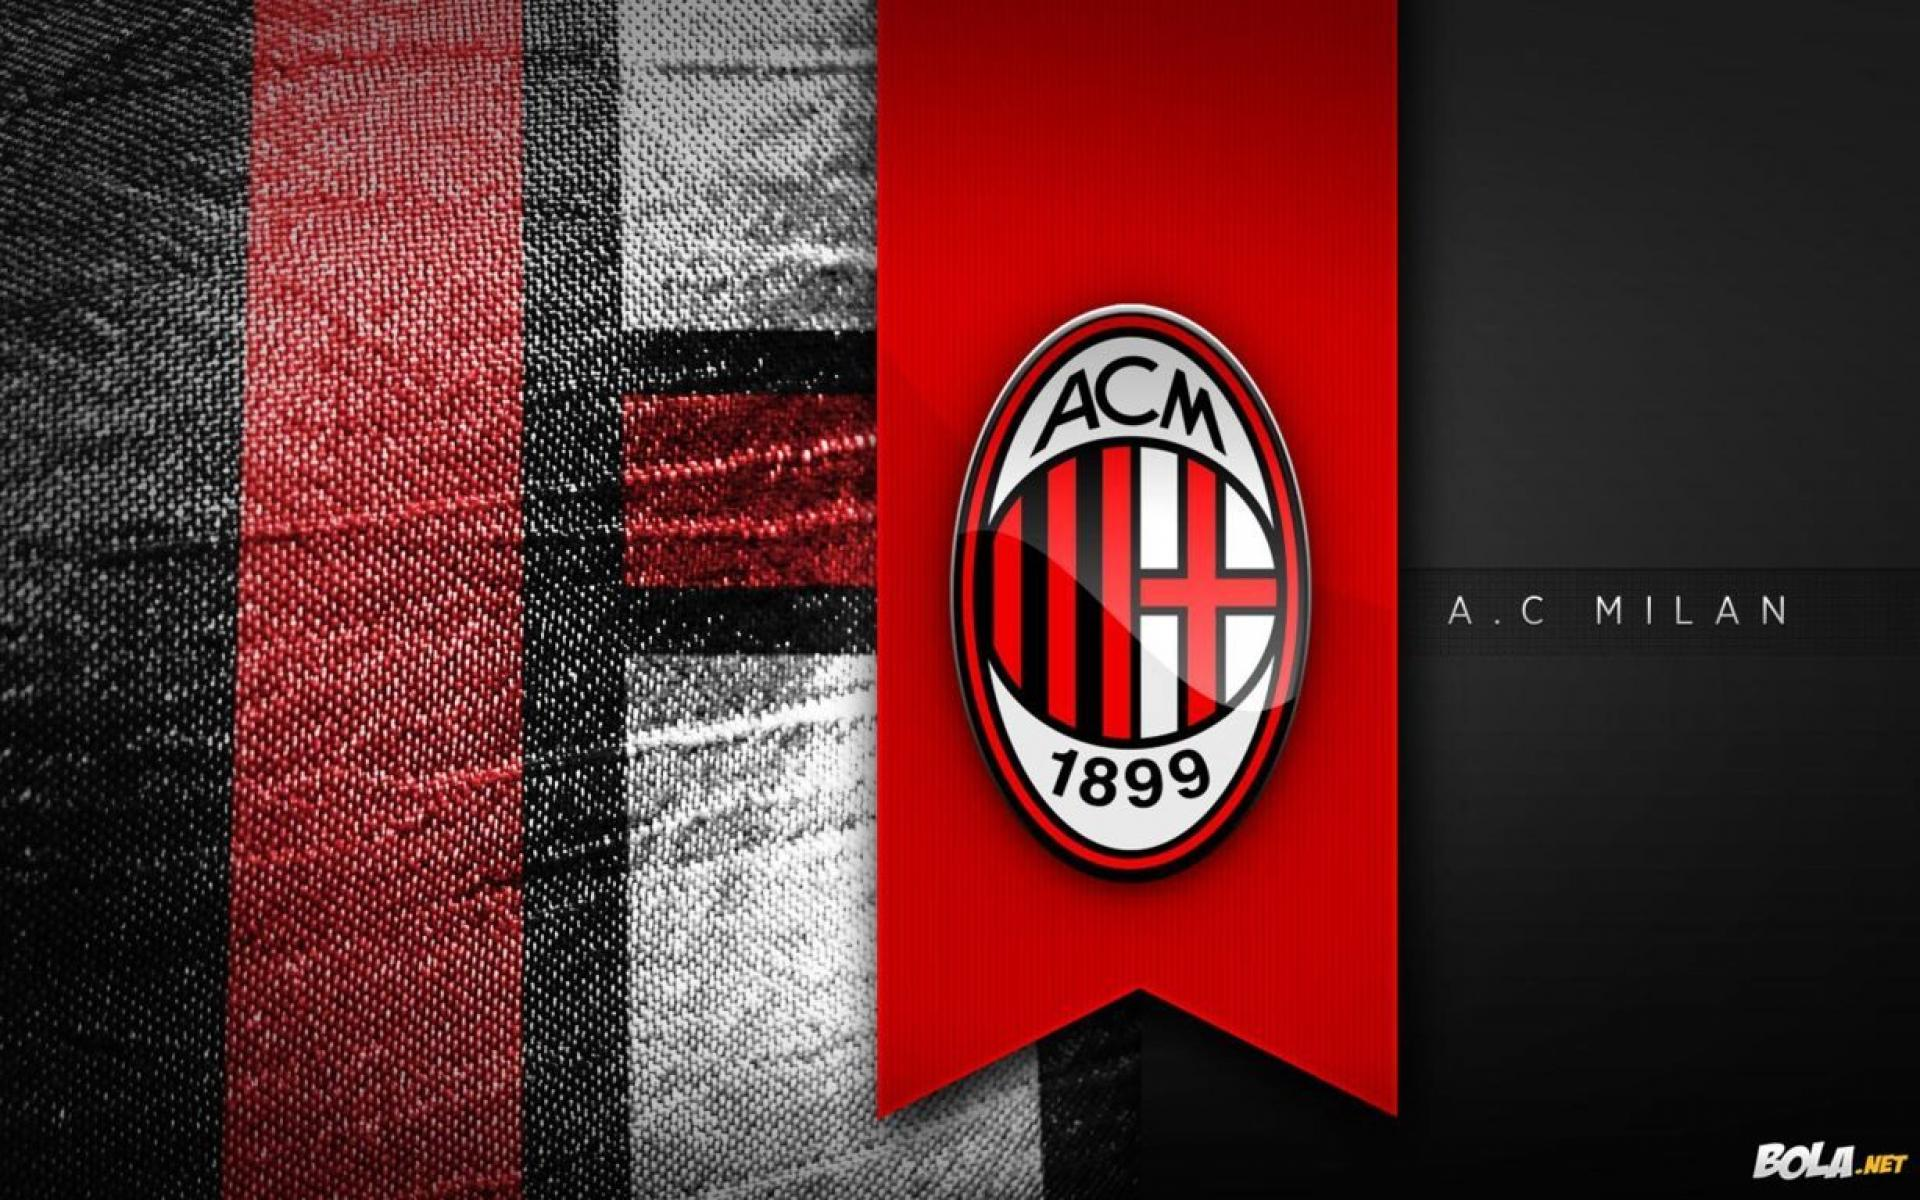 Ac Milan Club Football Hd Image